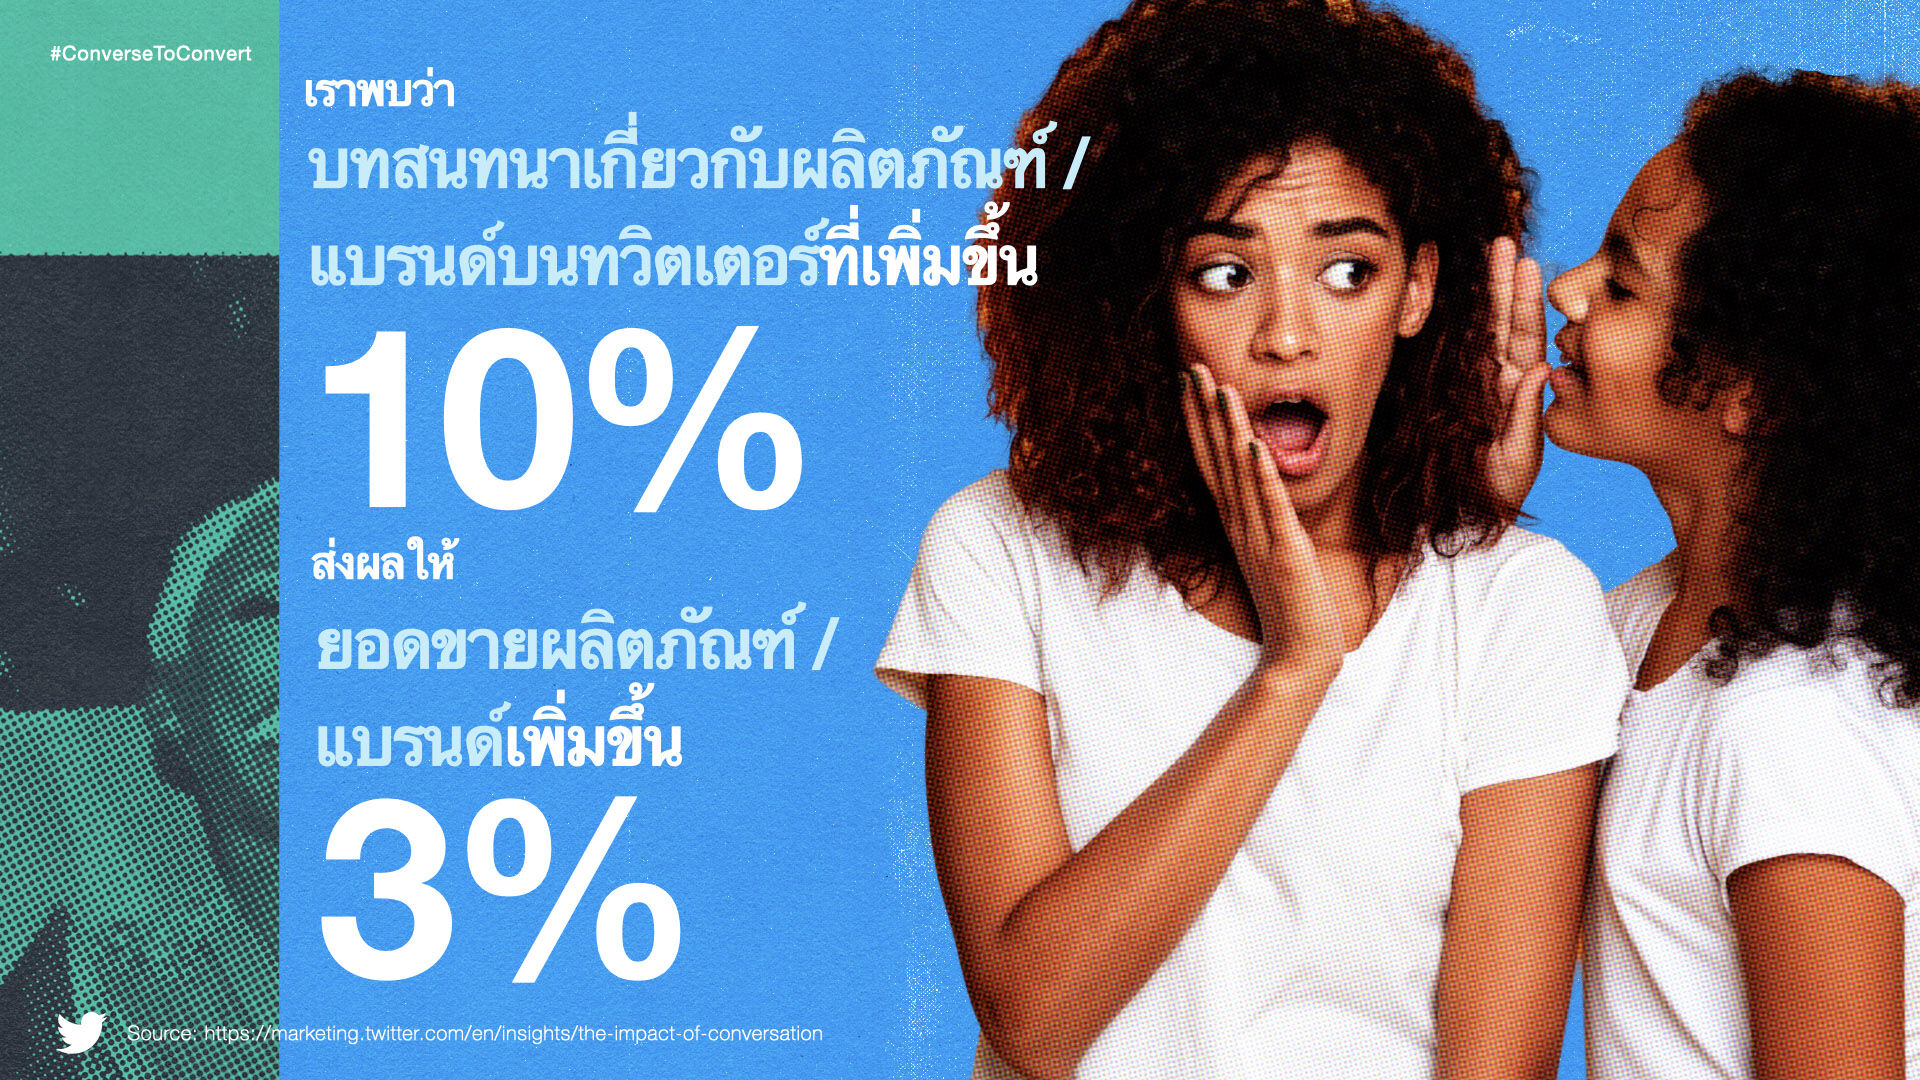 10% increase in conversations can lead upto 3% increase in sales (THA)_m